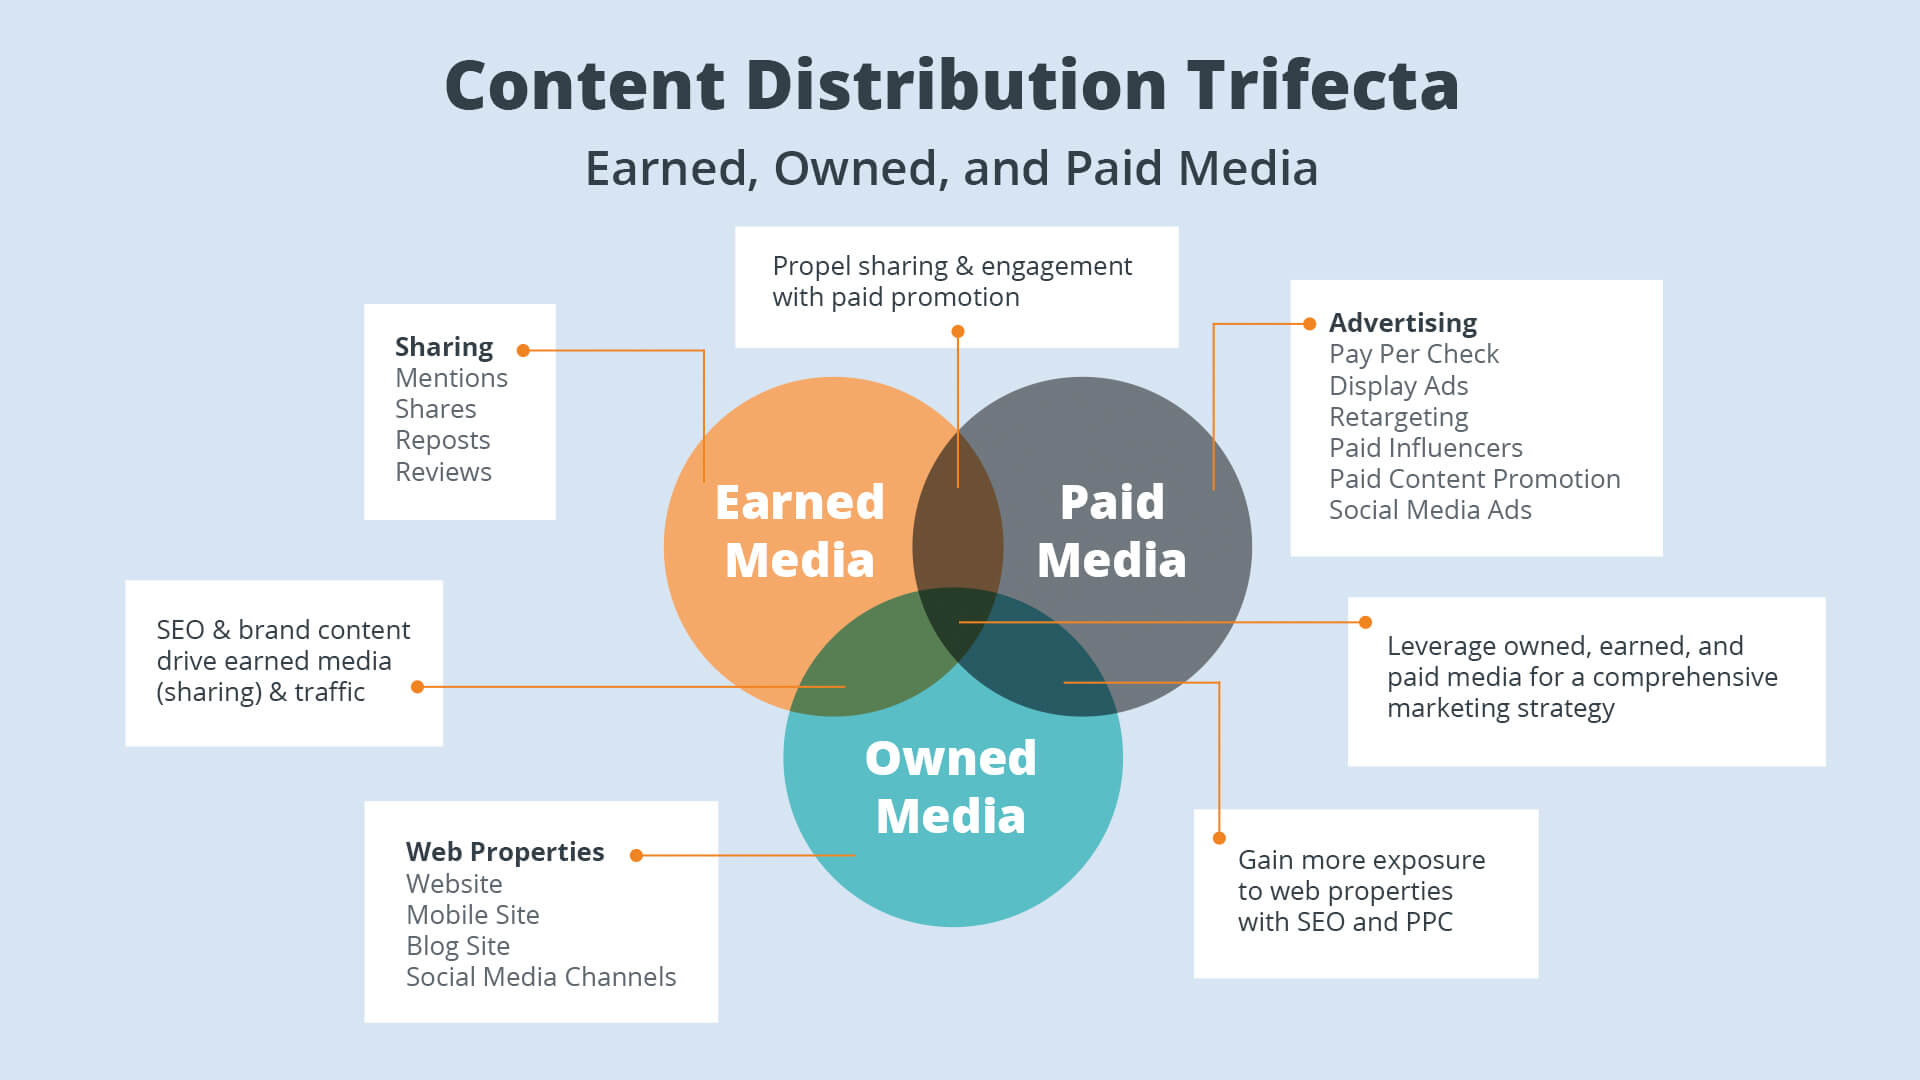 How Does Outbrain Content Distribution Work?